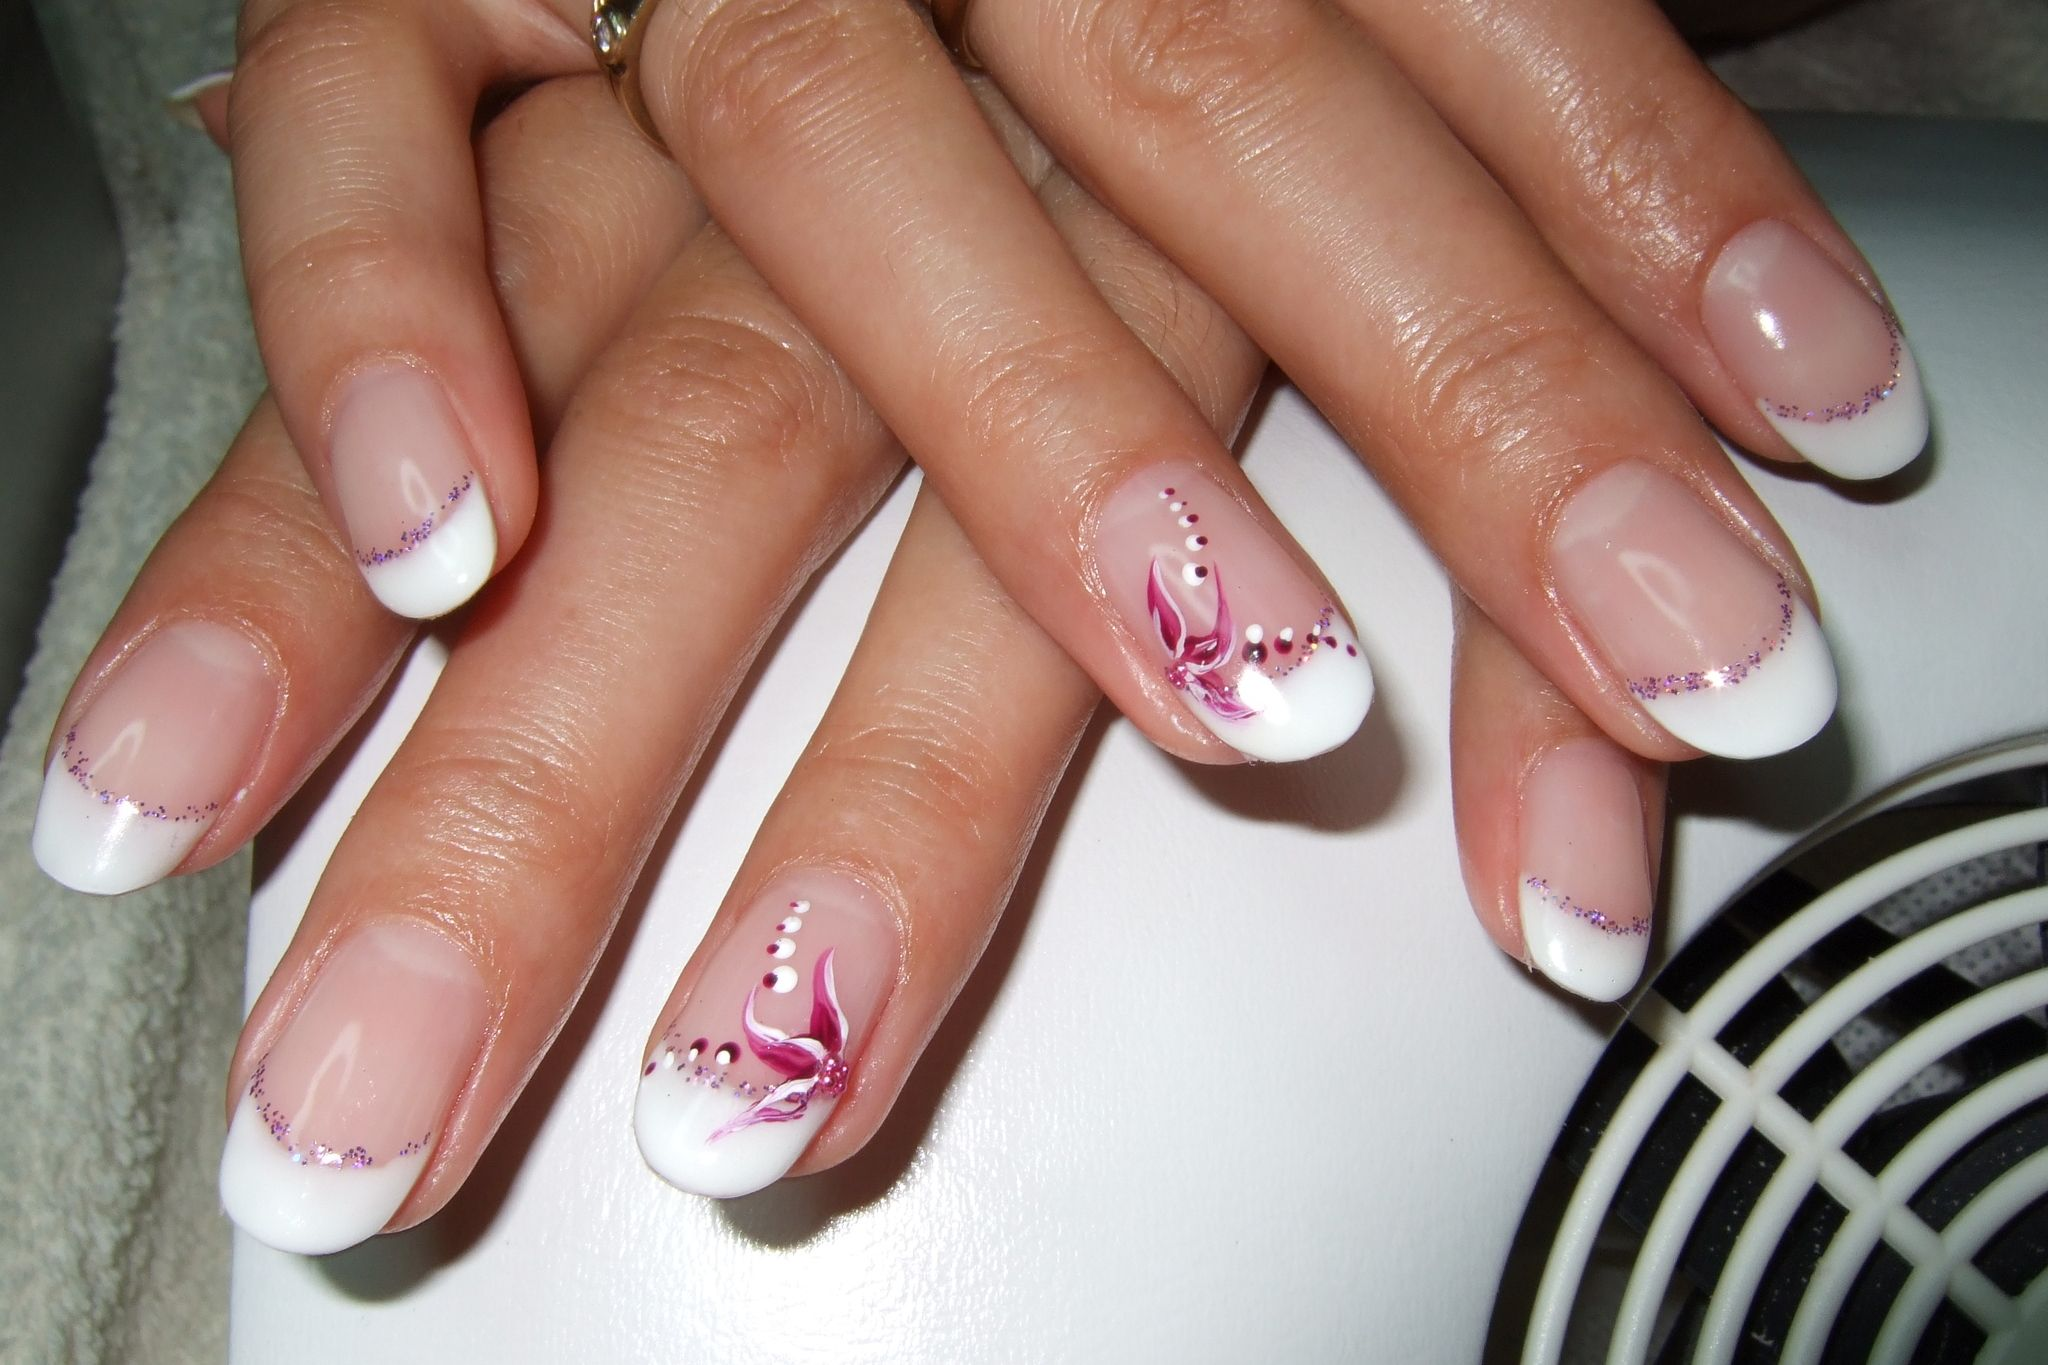 solar nail designs | Nageldesign Sch French... | Wedding Ideas ...